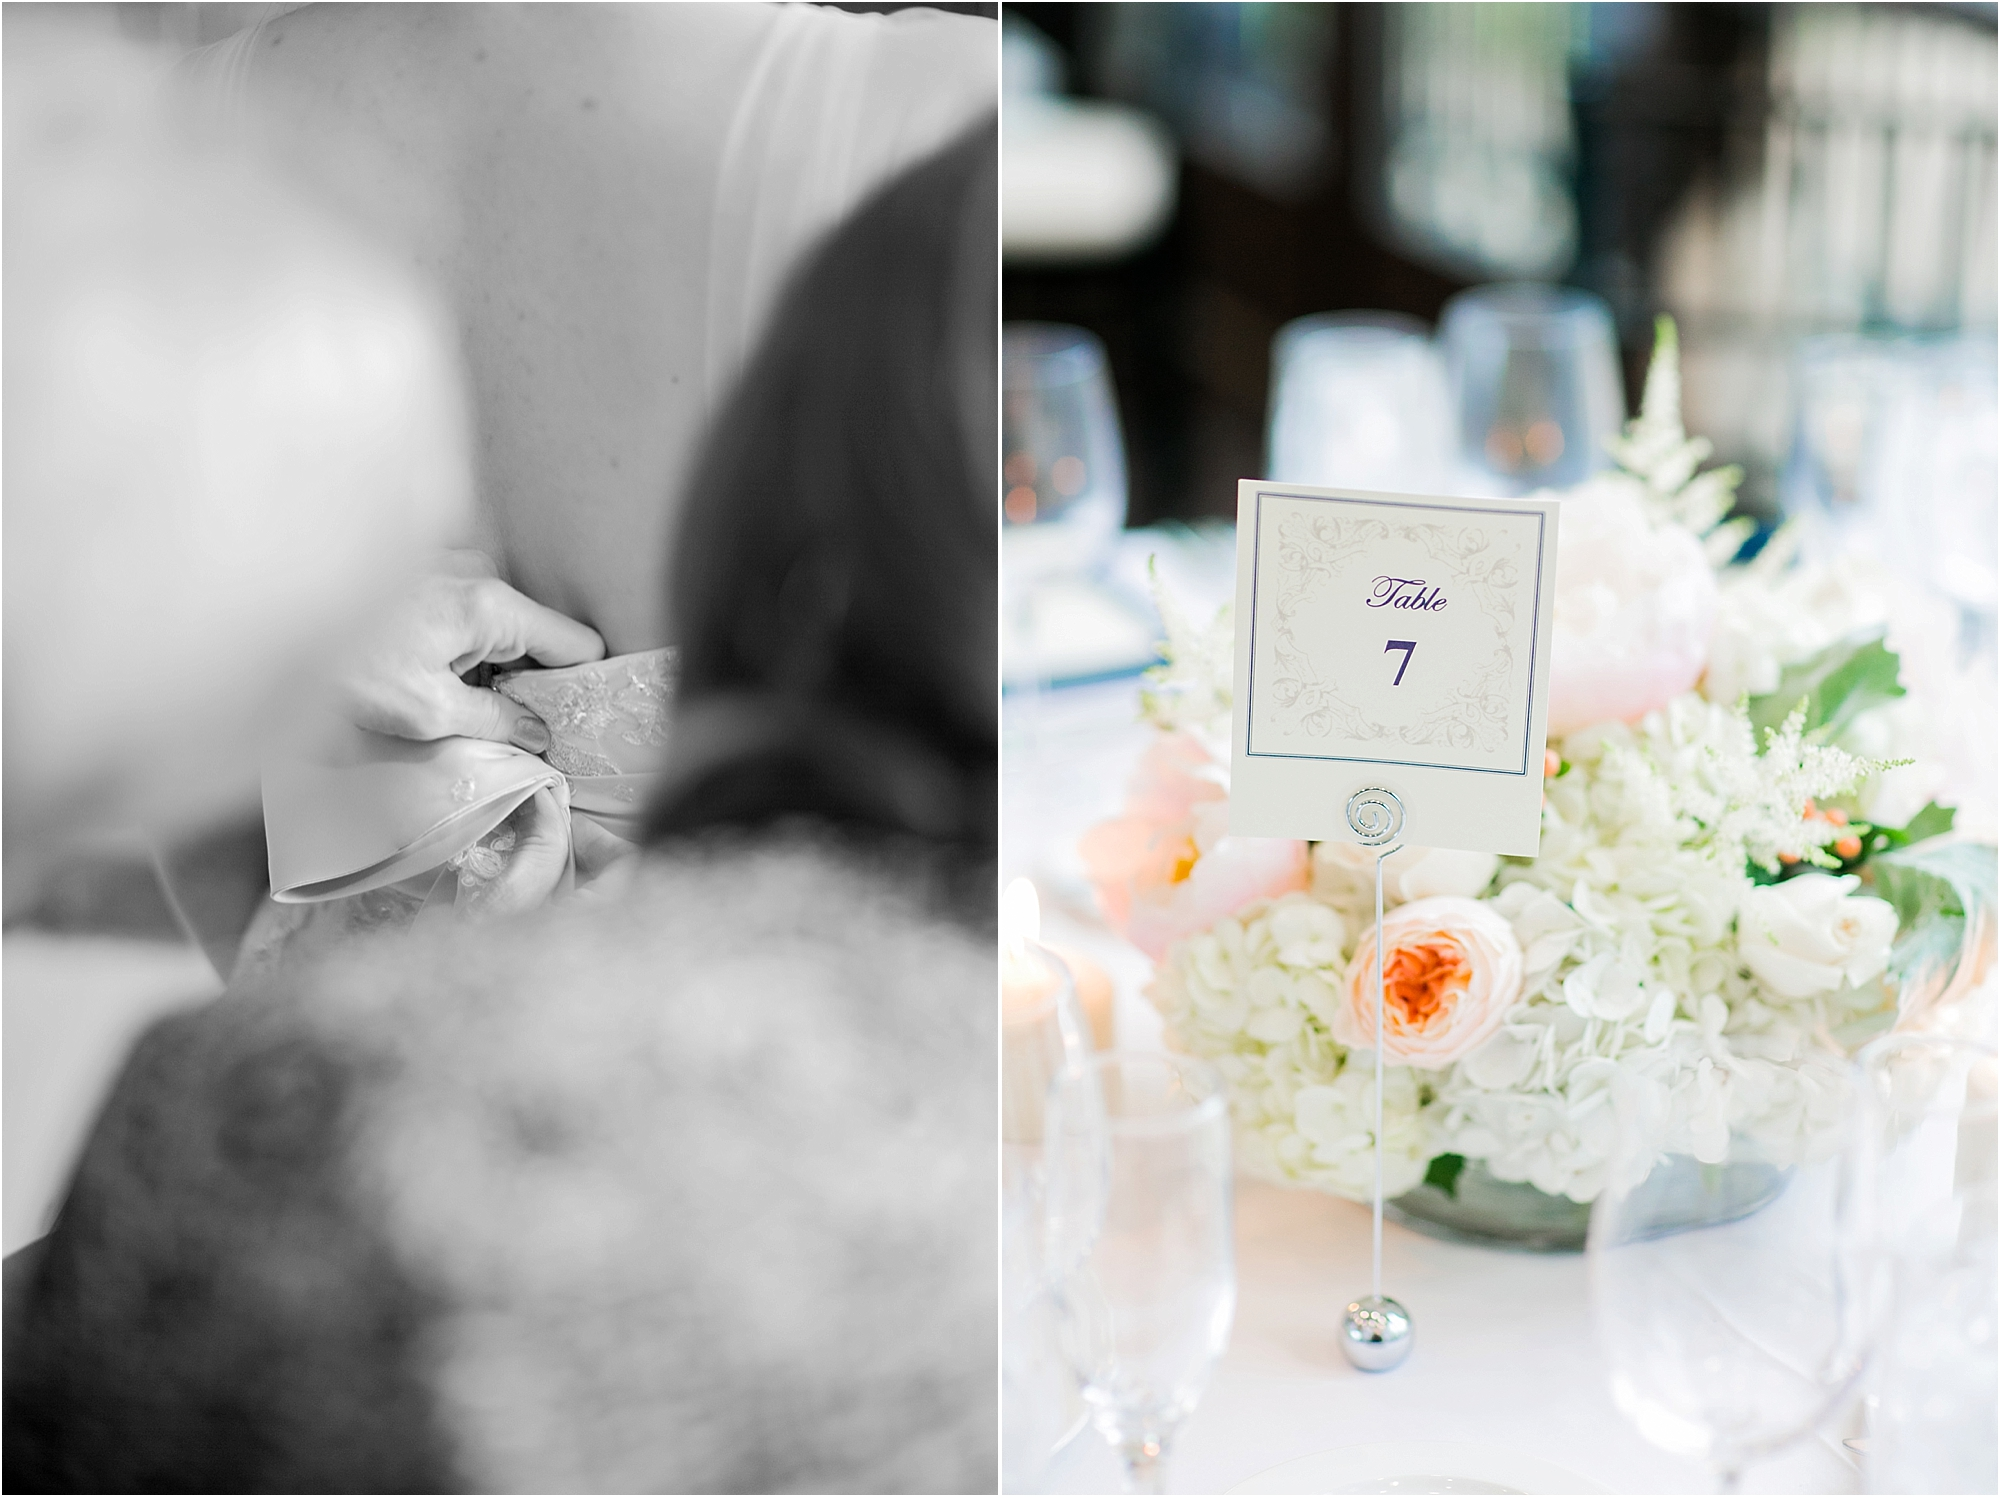 Bridal and Reception Details photographed with the Canon 85mm 1.2